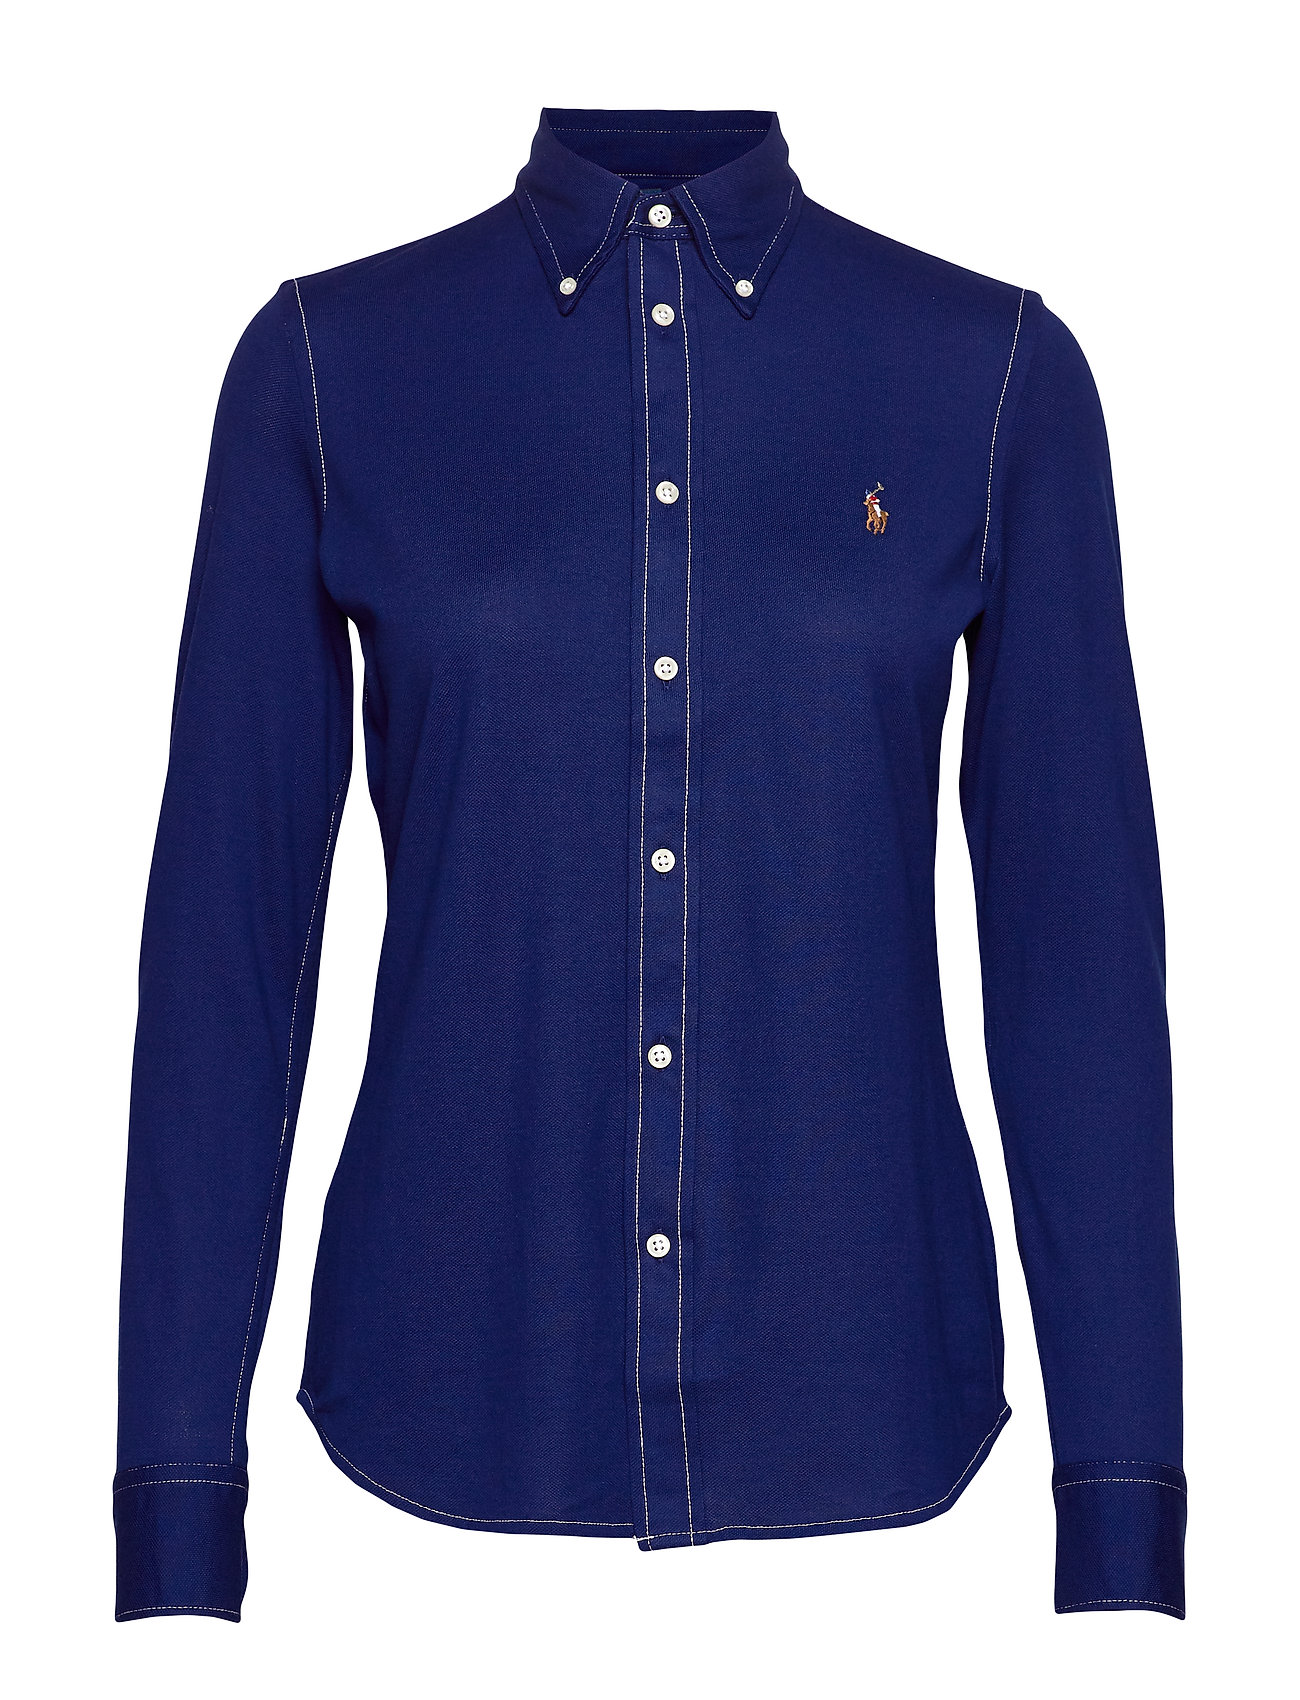 Polo Ralph Lauren Cotton Knit Oxford Shirt - HOLIDAY NAVY